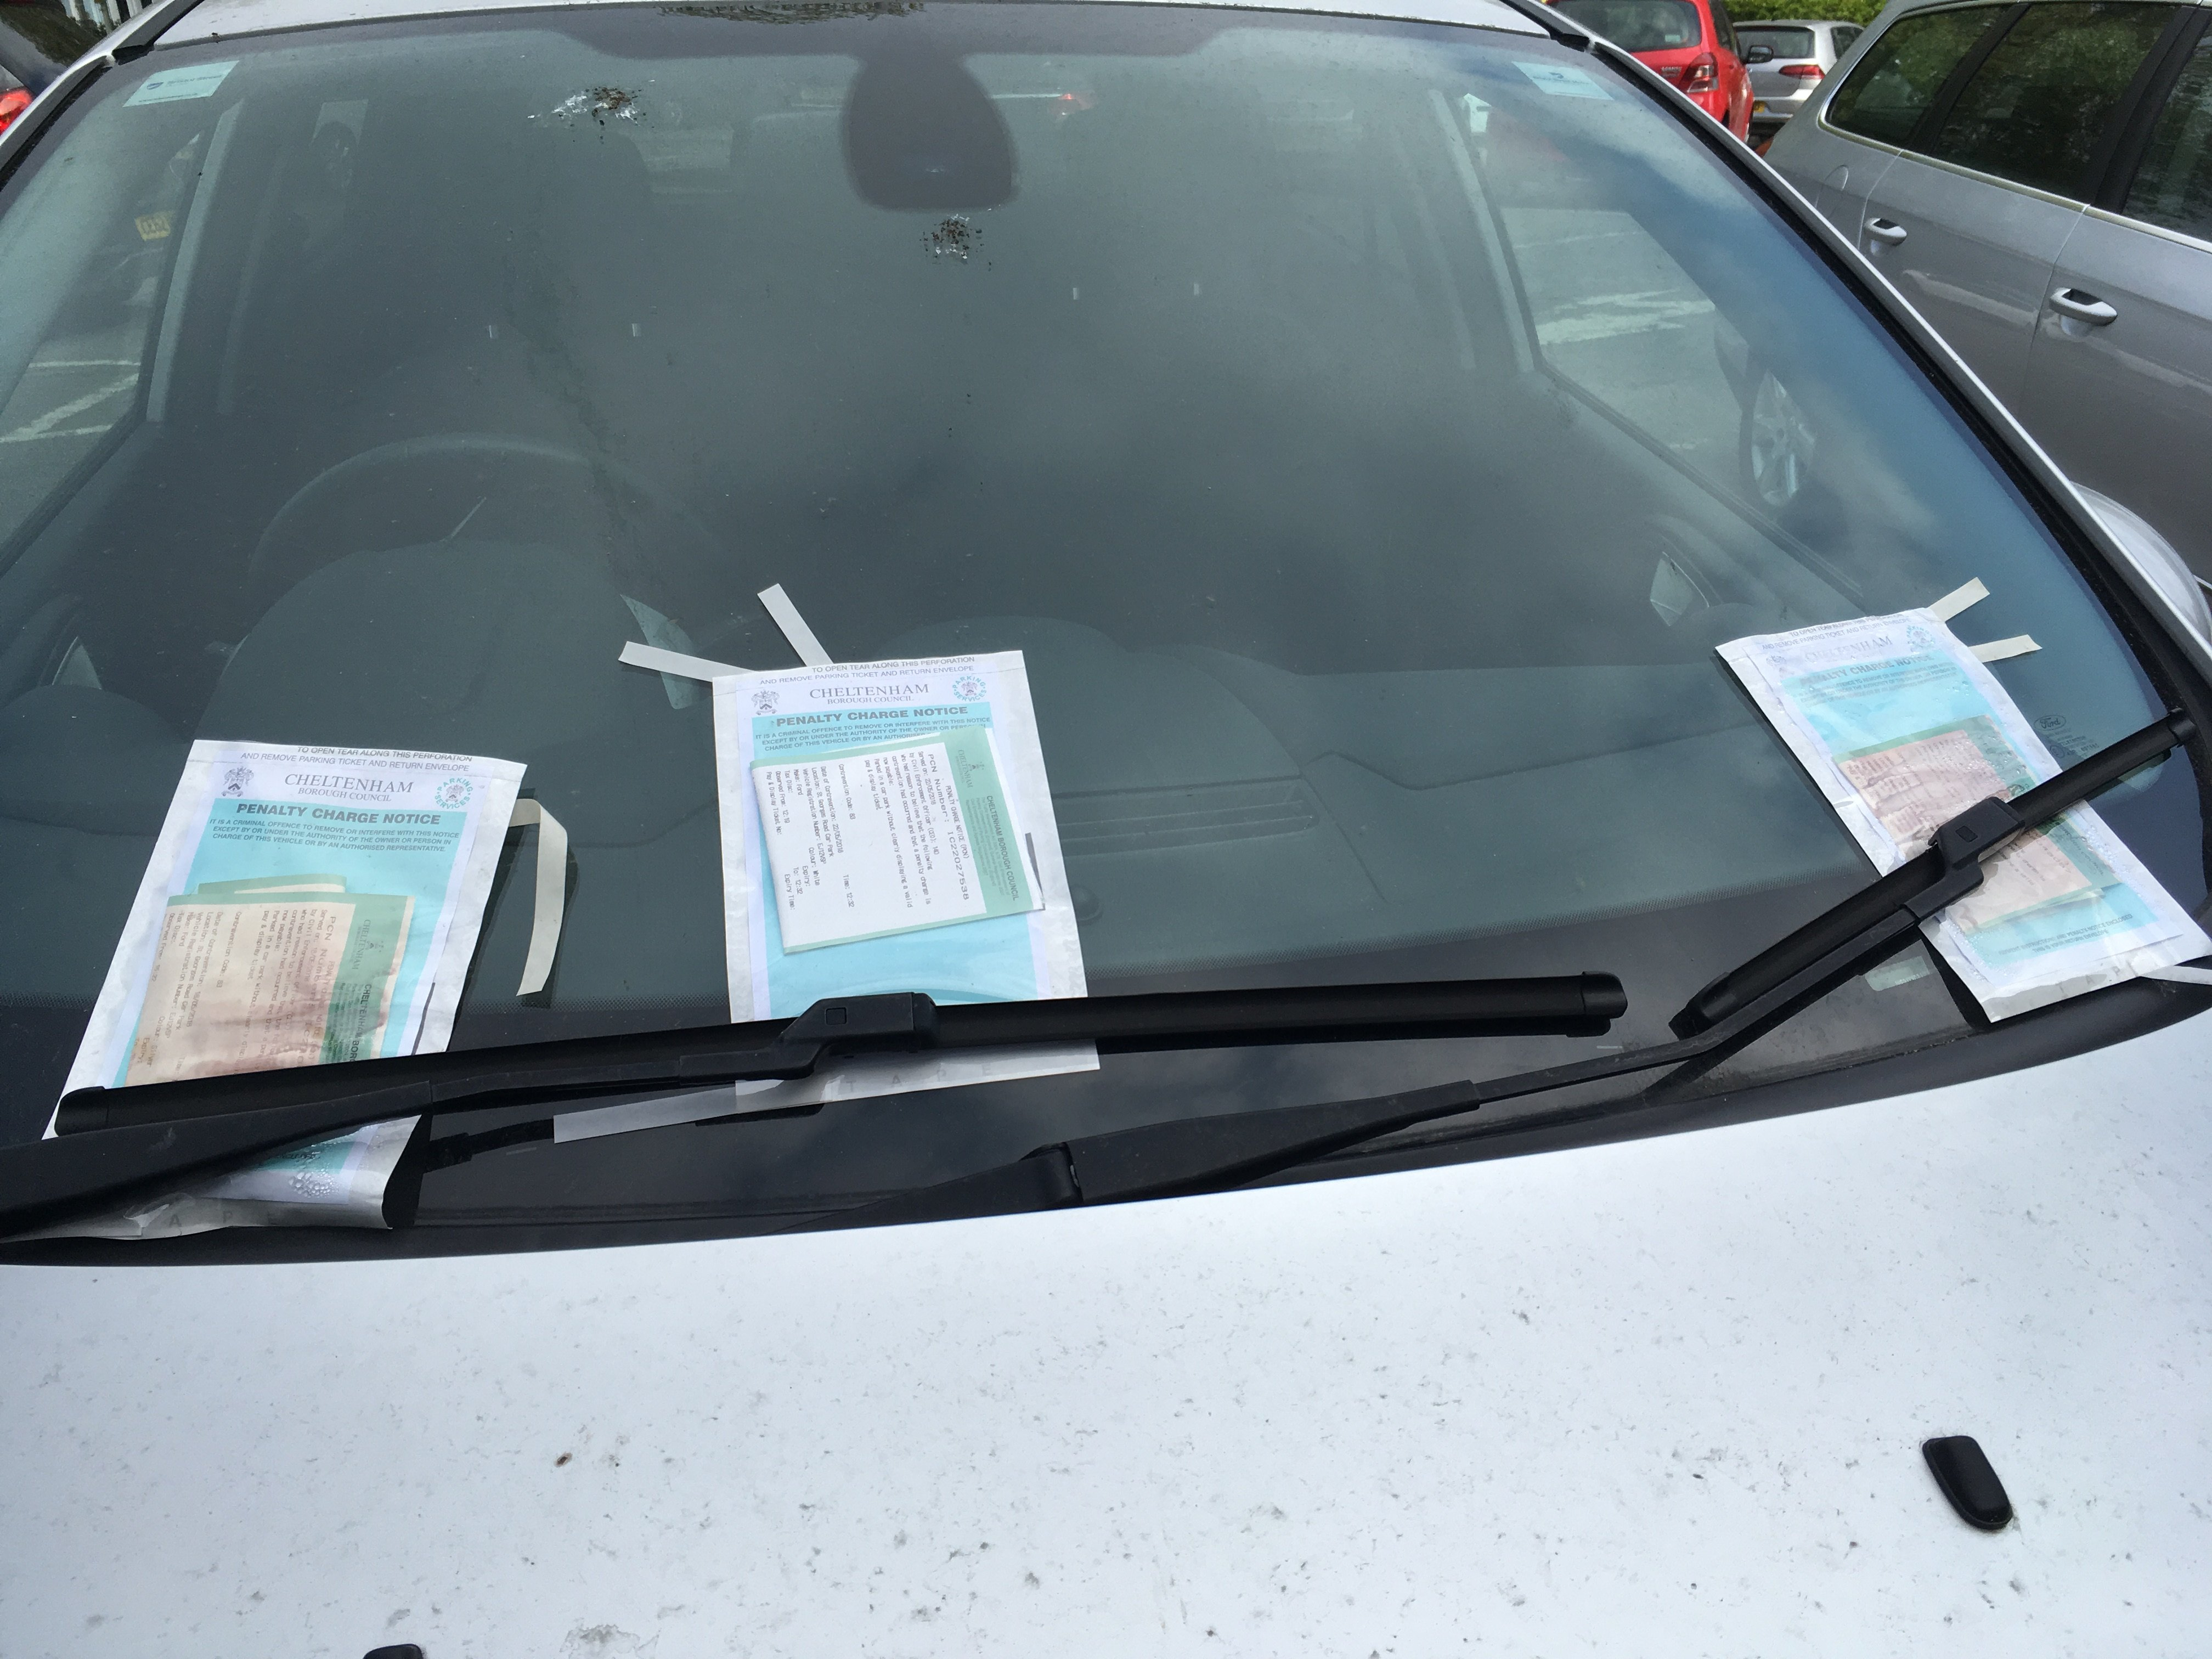 Car covered in parking tickets